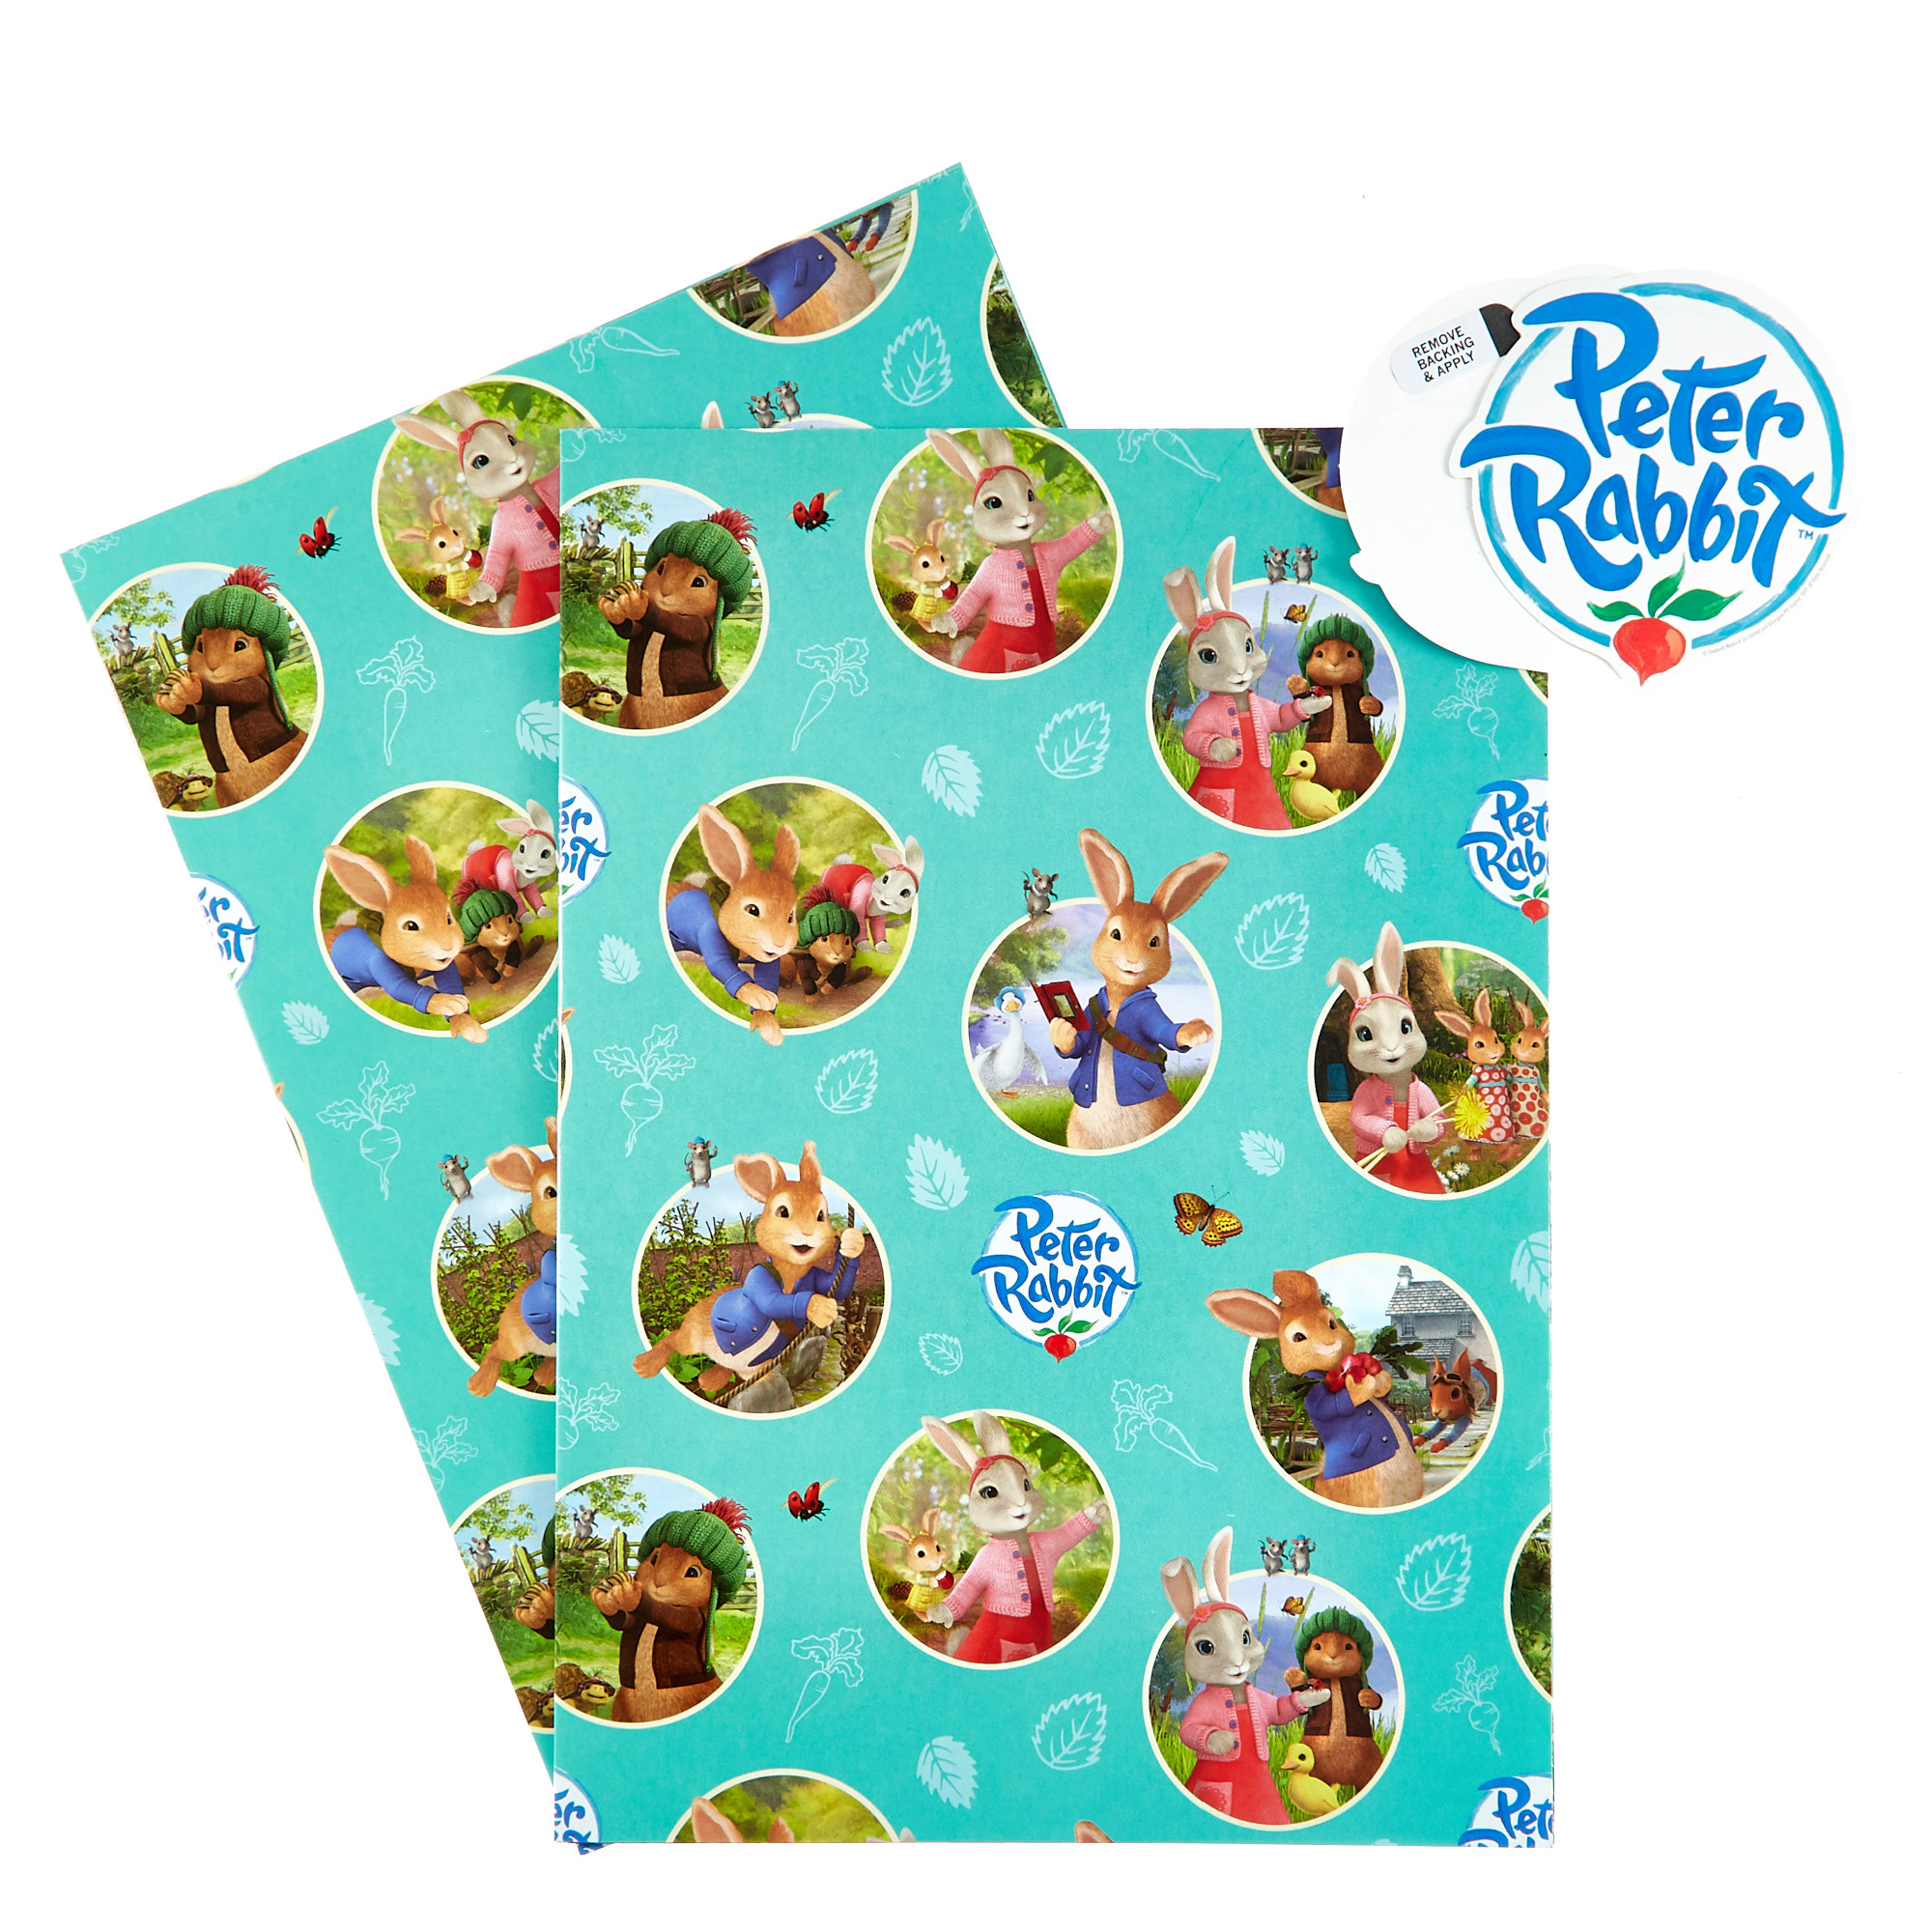 Peter Rabbit Birthday Wrapping Paper Inc 2 sheets /& 2 tags